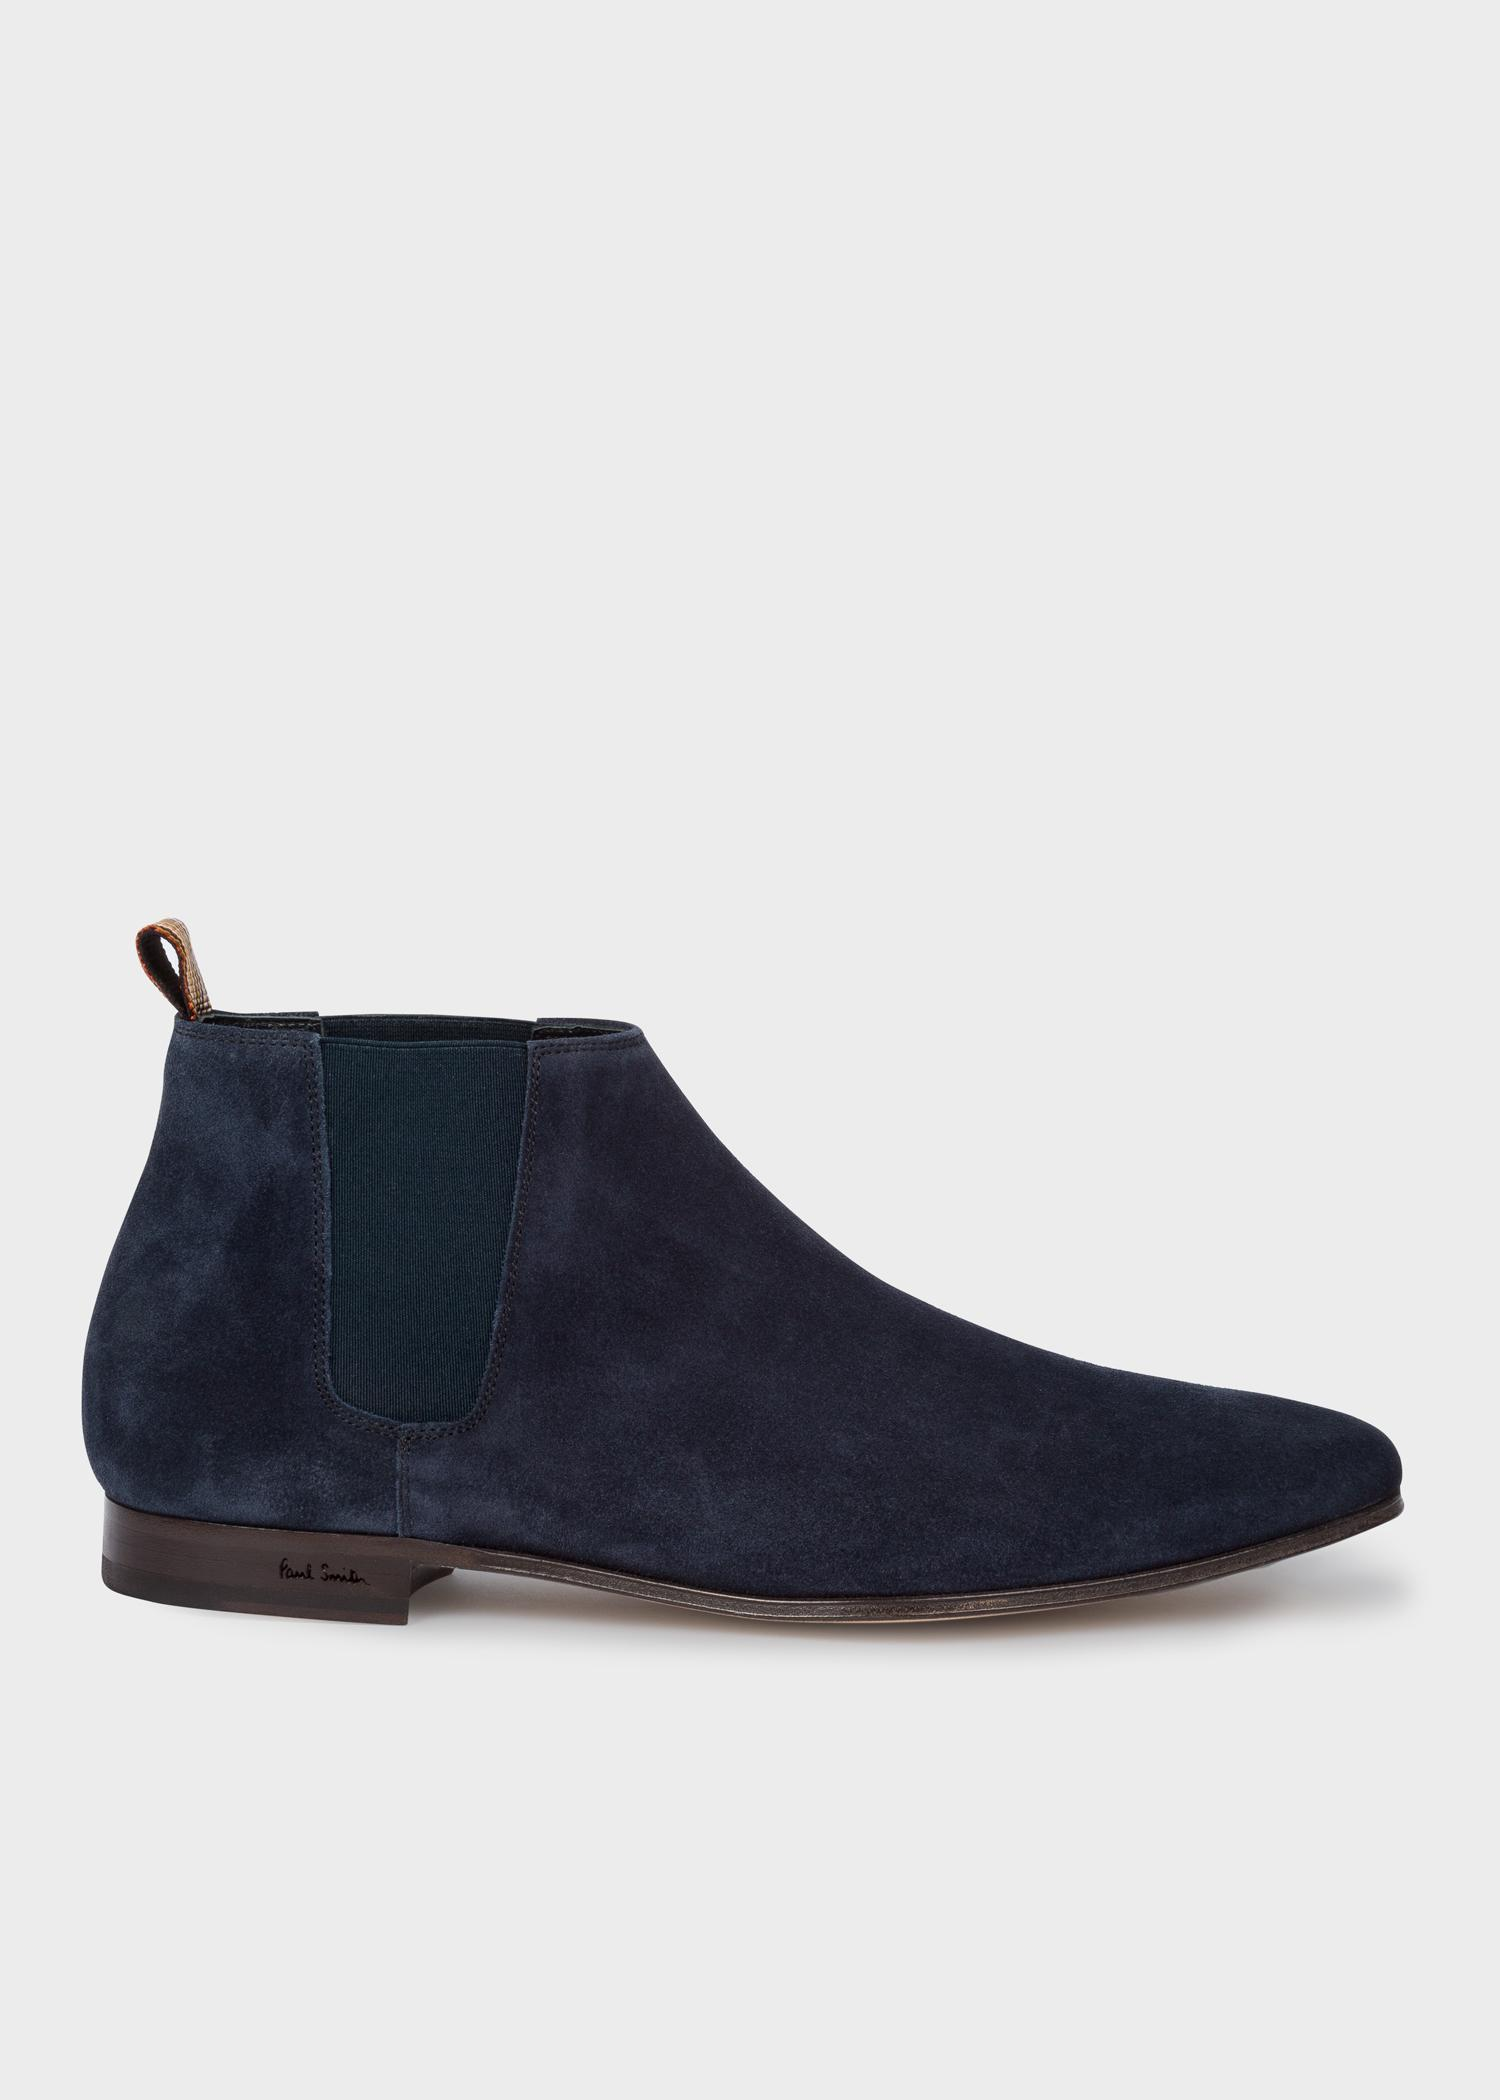 d54f108807f50 Paul Smith Dark Navy Suede Leather 'marlowe' Chelsea Boots in Blue ...